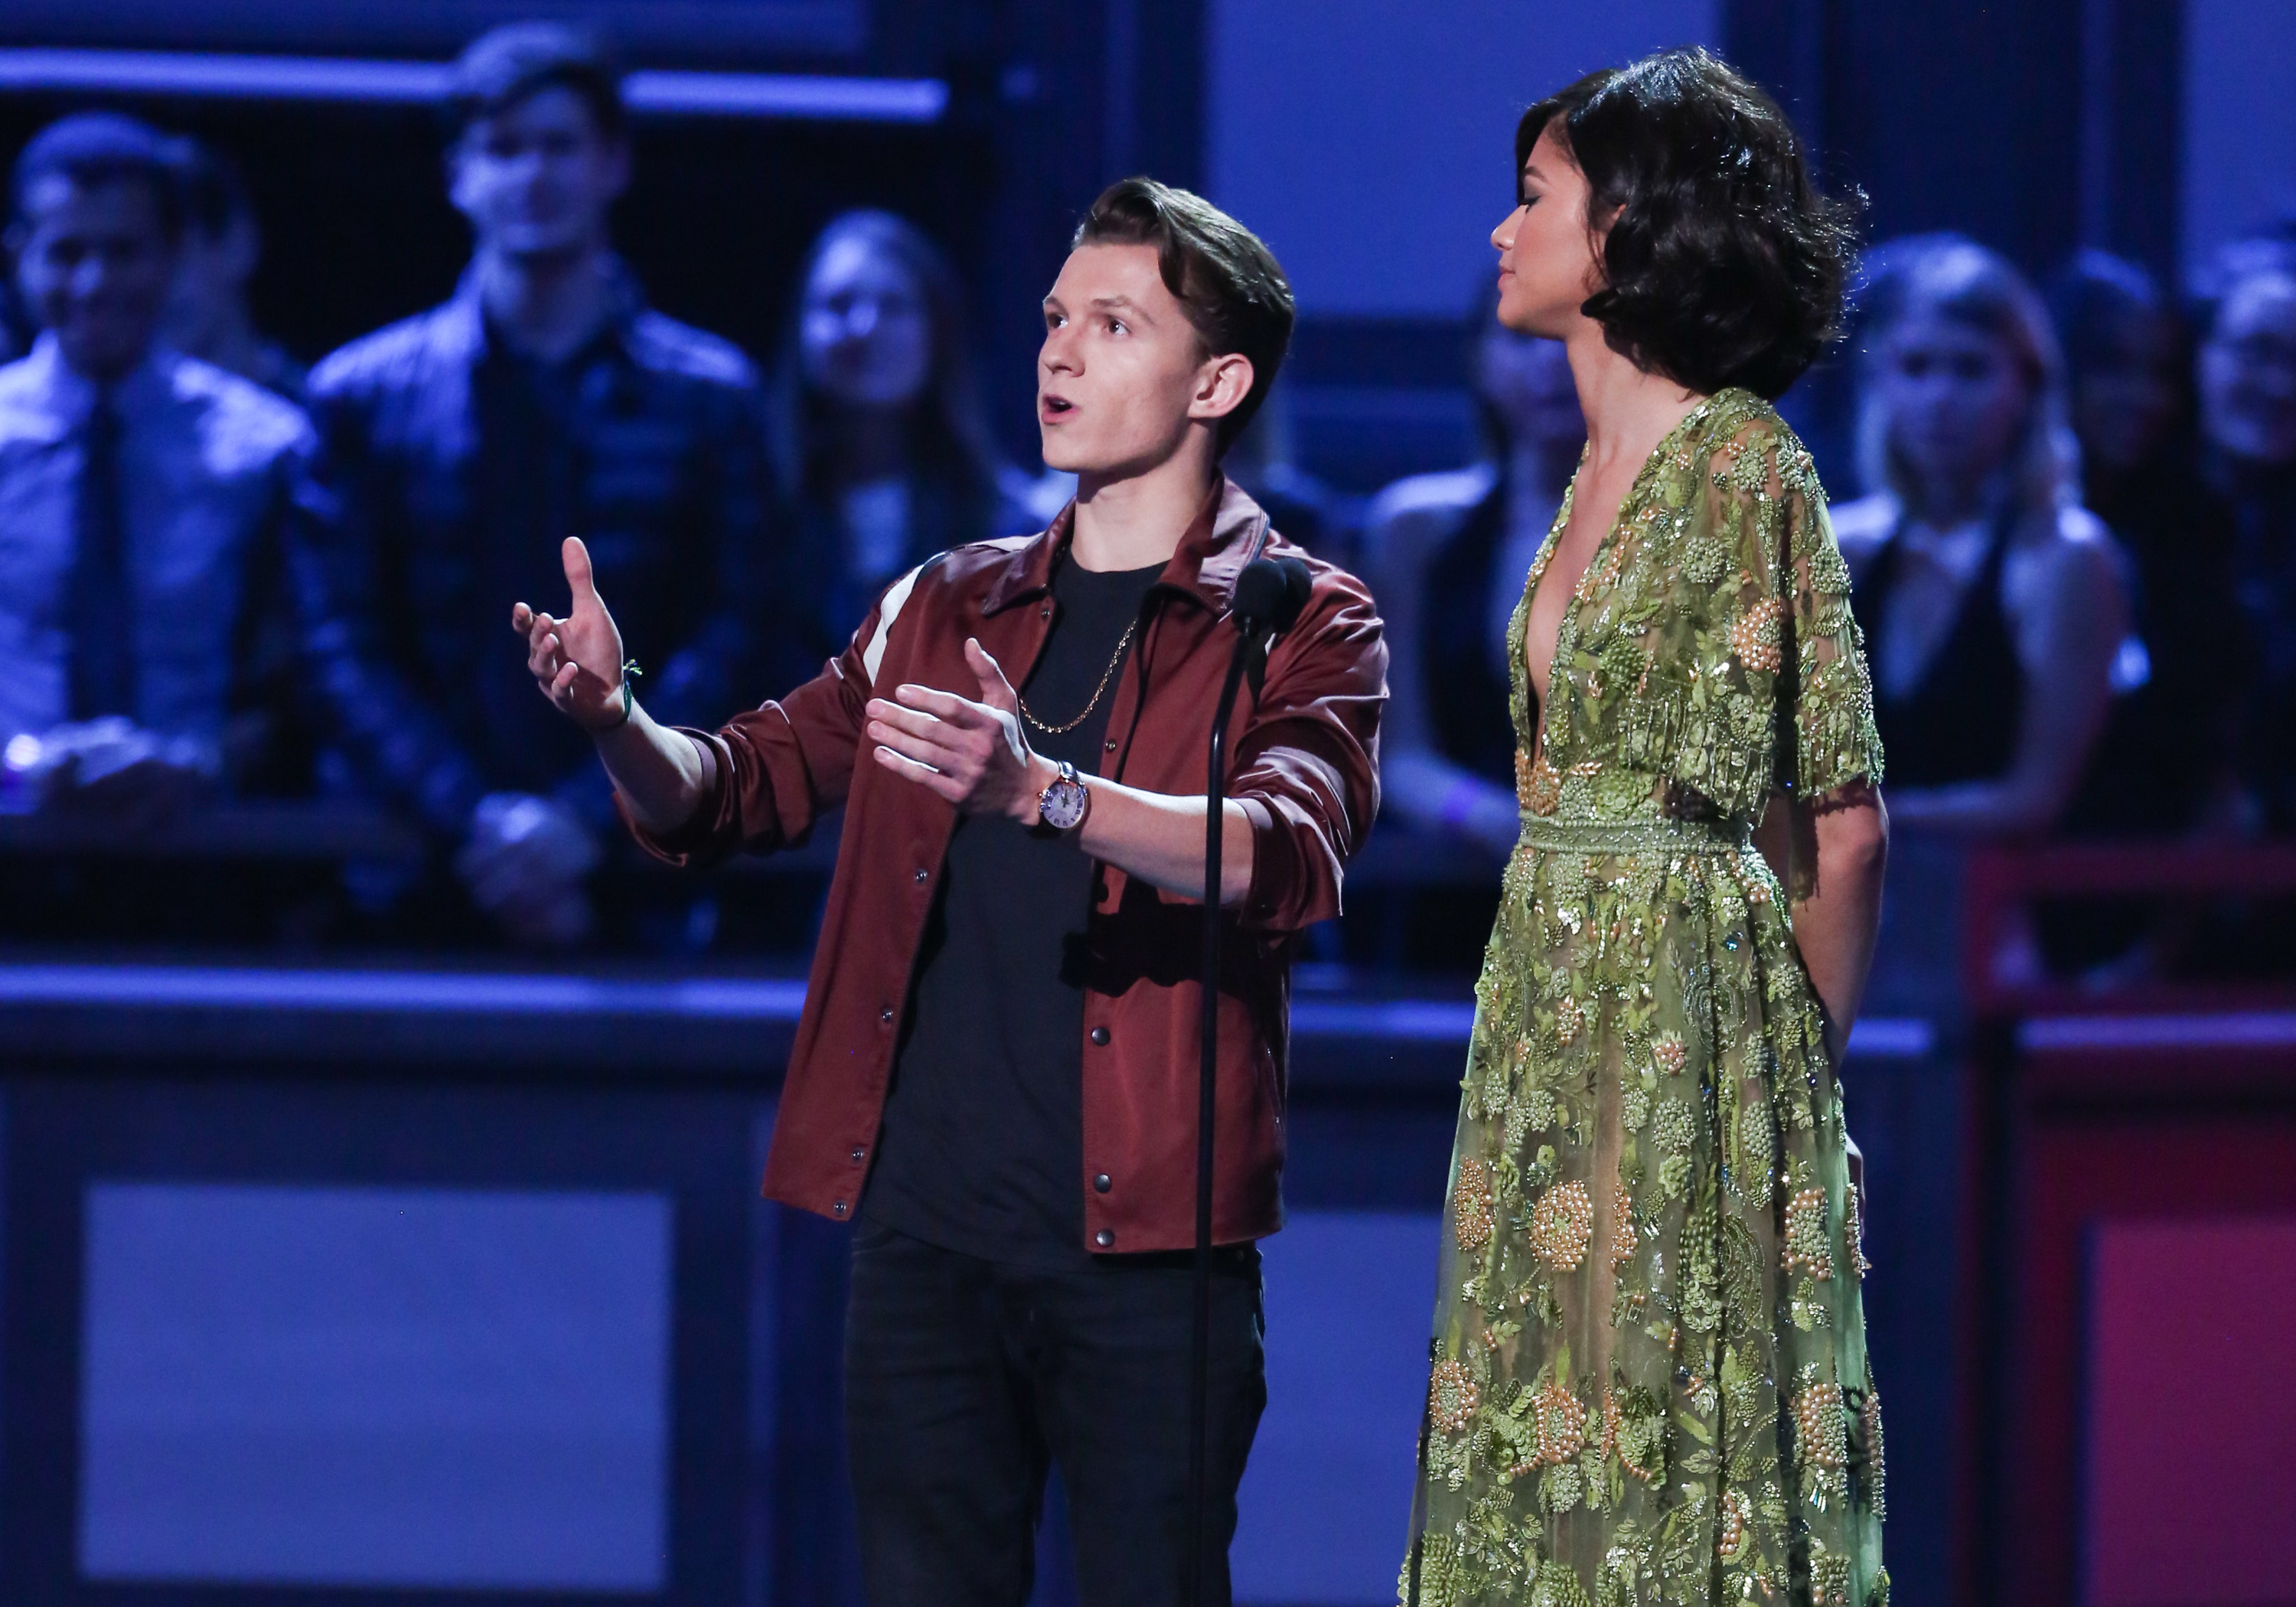 LOS ANGELES, CA - MAY 07:  Actors Zendaya (L) and Tom Holland (R) attend the 2017 MTV Movie And TV Awards at The Shrine Auditorium on May 7, 2017 in Los Angeles, California.  (Photo by Paul Archuleta/FilmMagic)